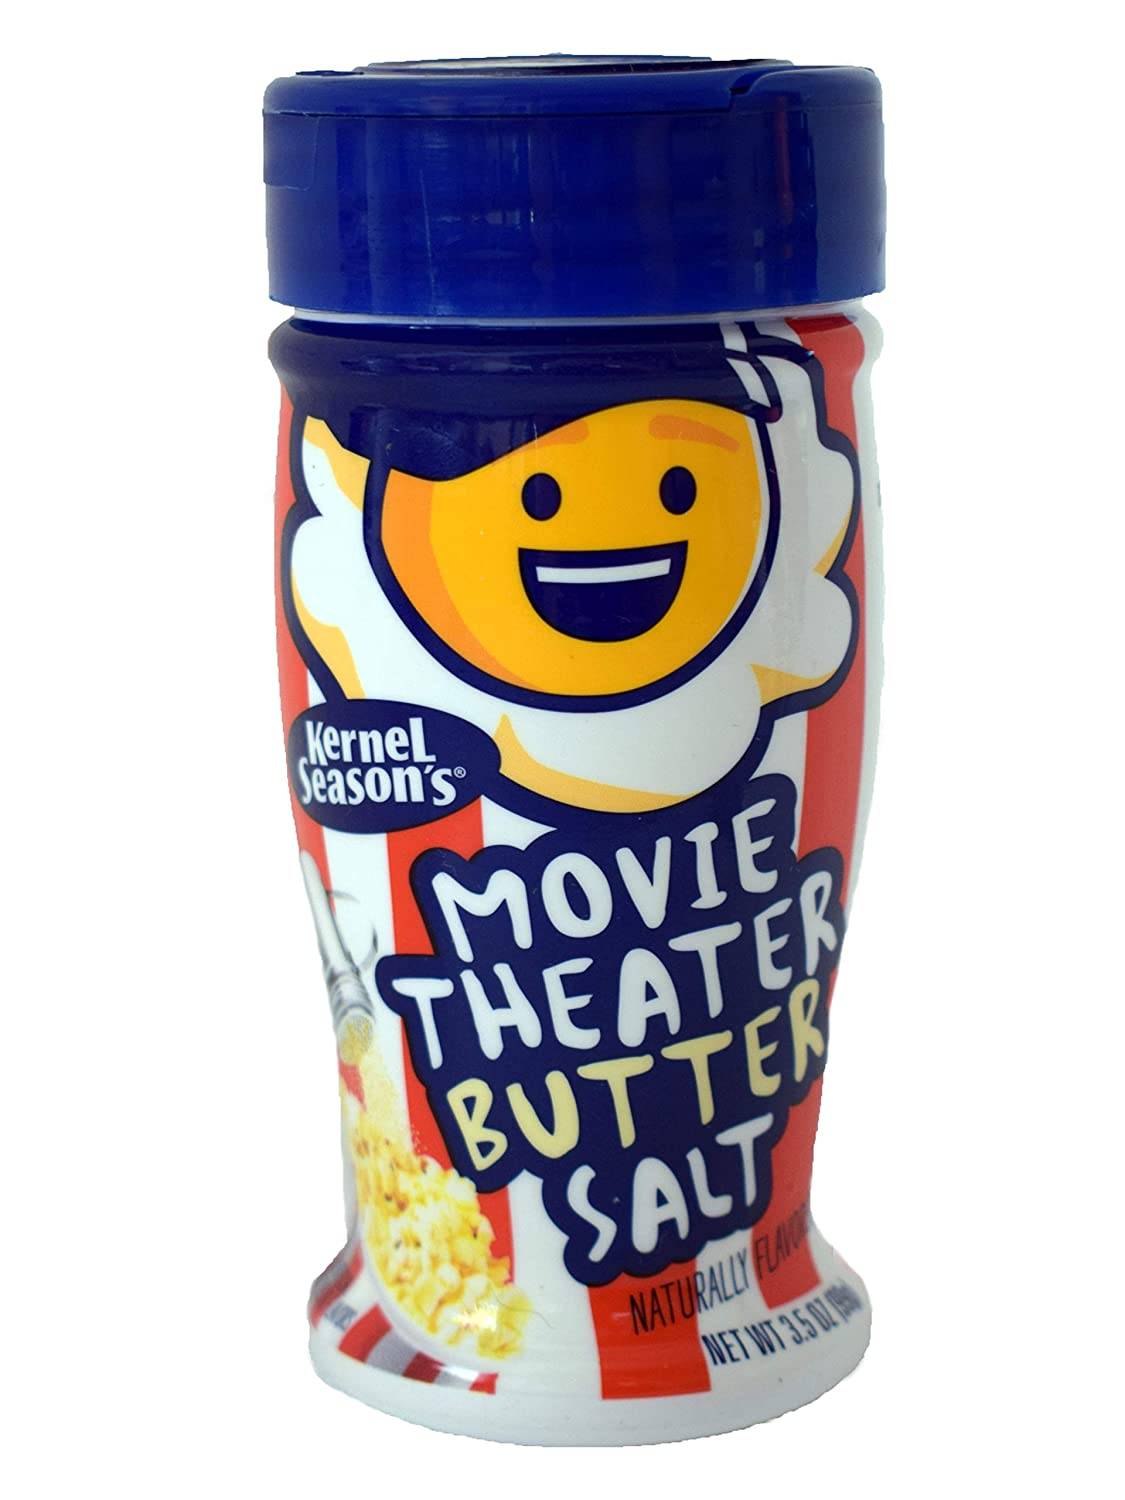 Amazon Com Kernel Season S Movie Theater Butter Salt Popcorn Seasoning Movie Theater Butter Salt 3 5 Ounce Pack Of 6 Grocery Gourmet Food